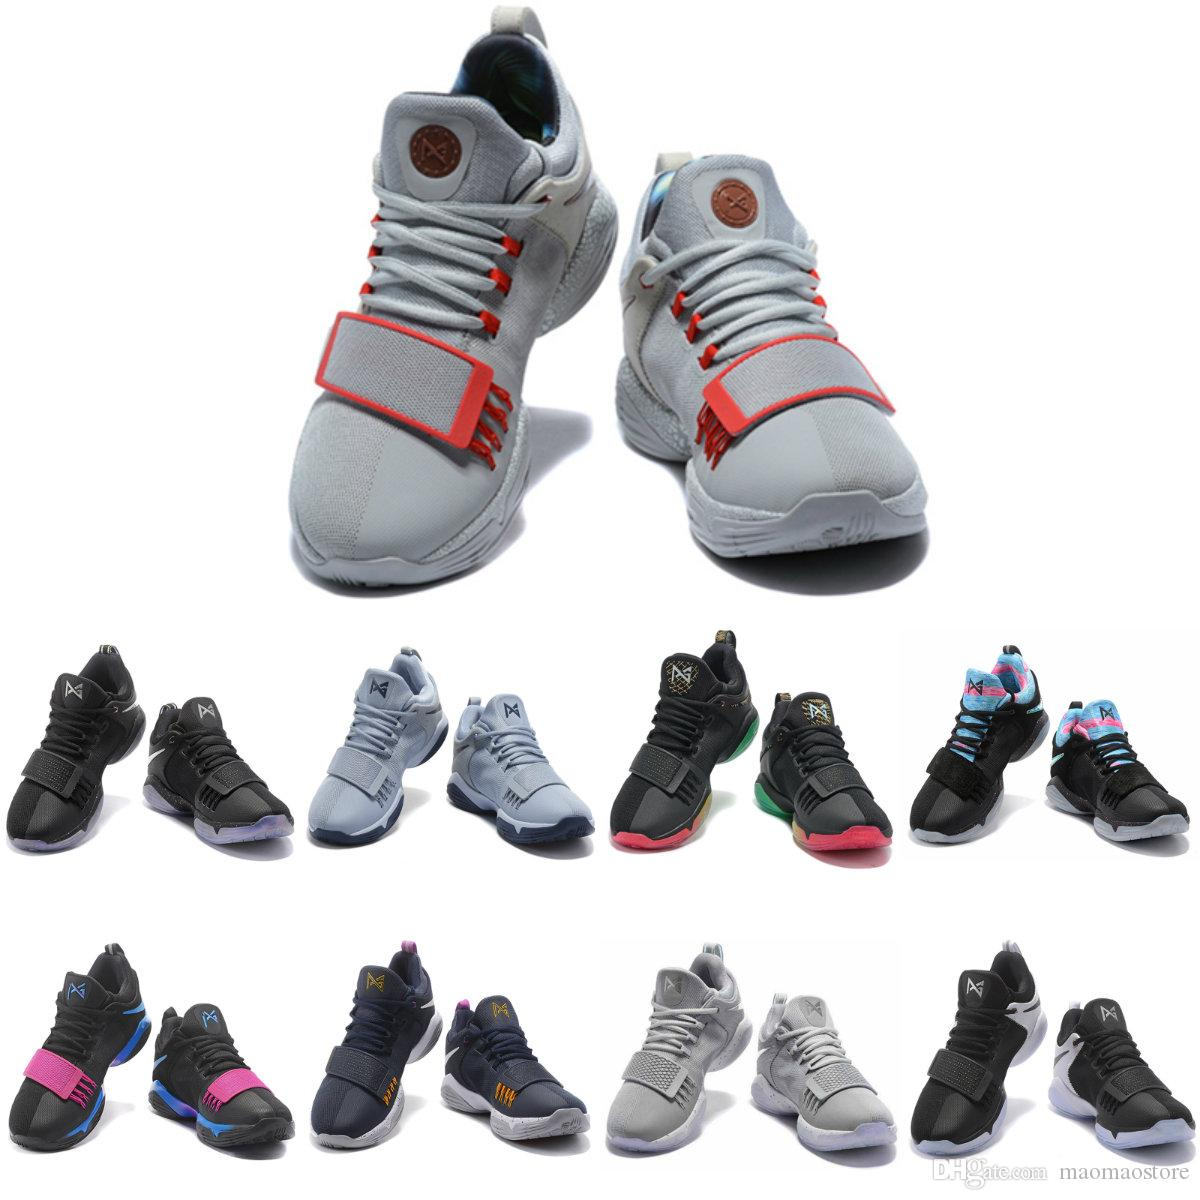 546ce5e0f51 2019 PG 1 Zoom Men Basketball Shoes Glacier Grey Ivory Ferocity Paul George  Sneakers Low Mens Sport Shoe PG1 Trainer Sneaker Black Red White From ...